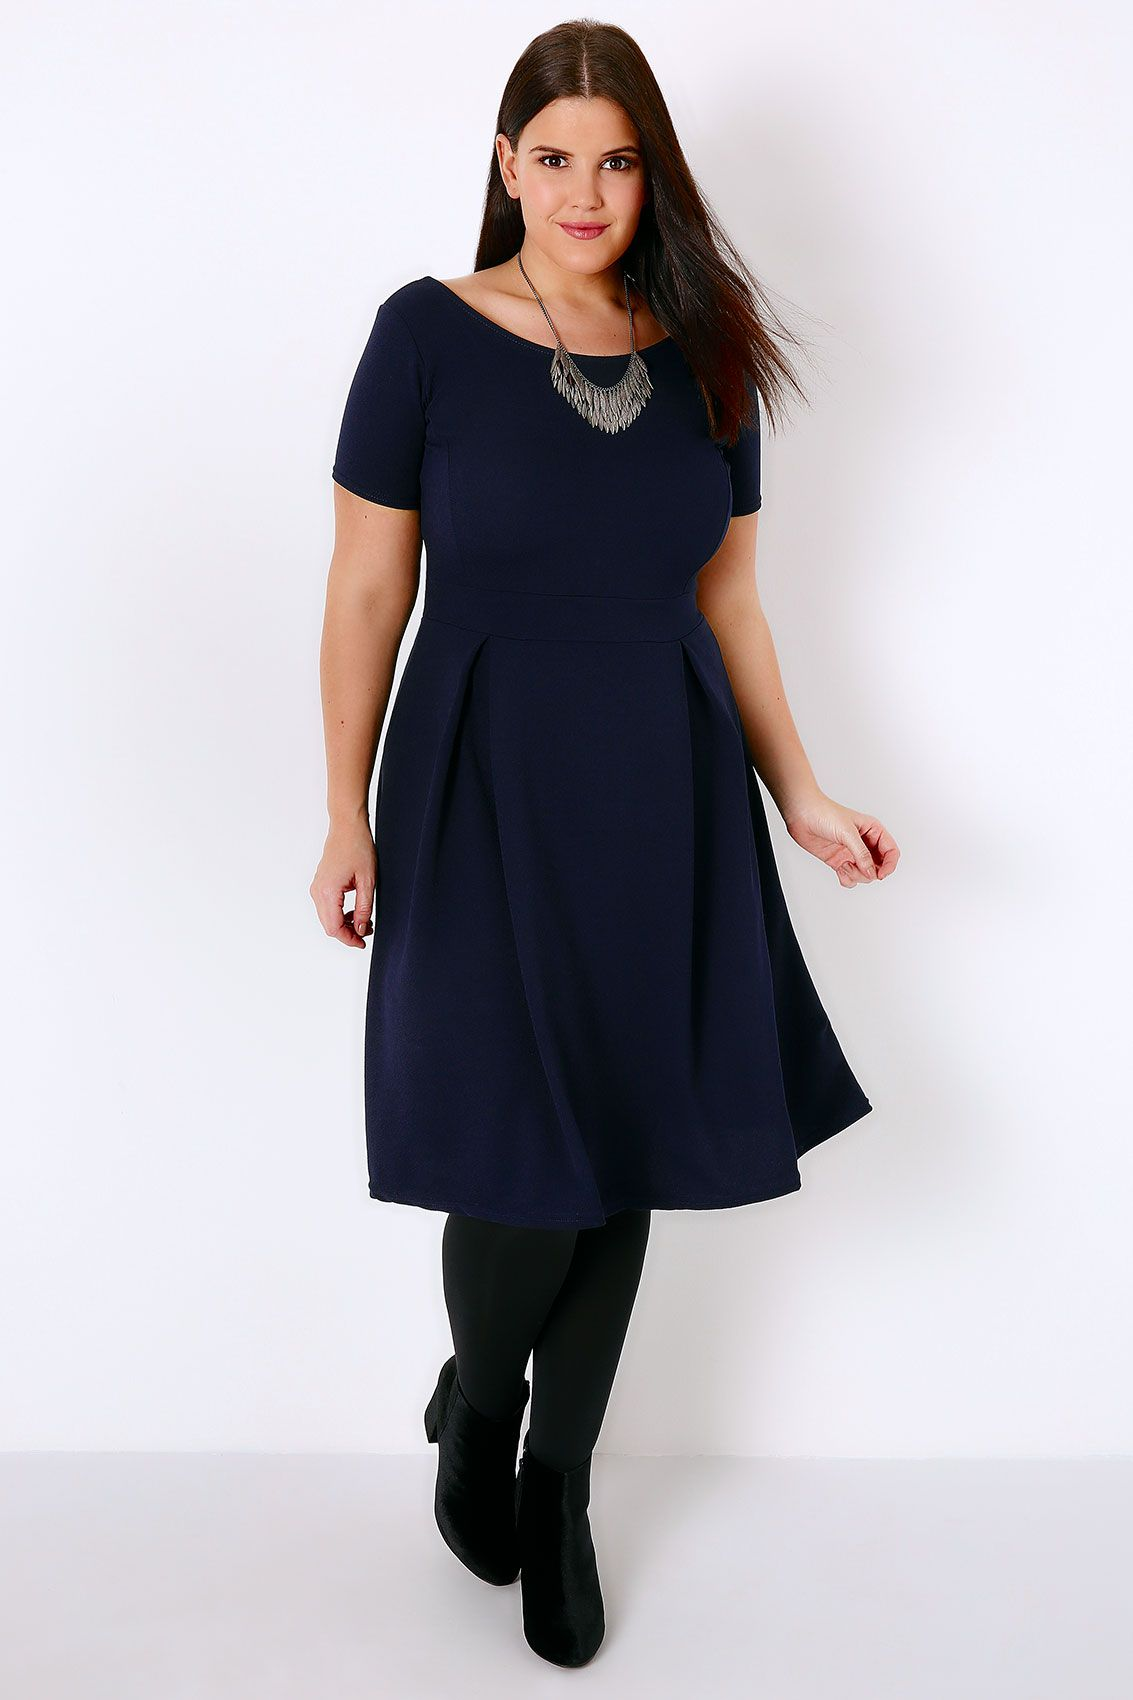 Outfit 16226 | Fit flare dress, Latest outfits